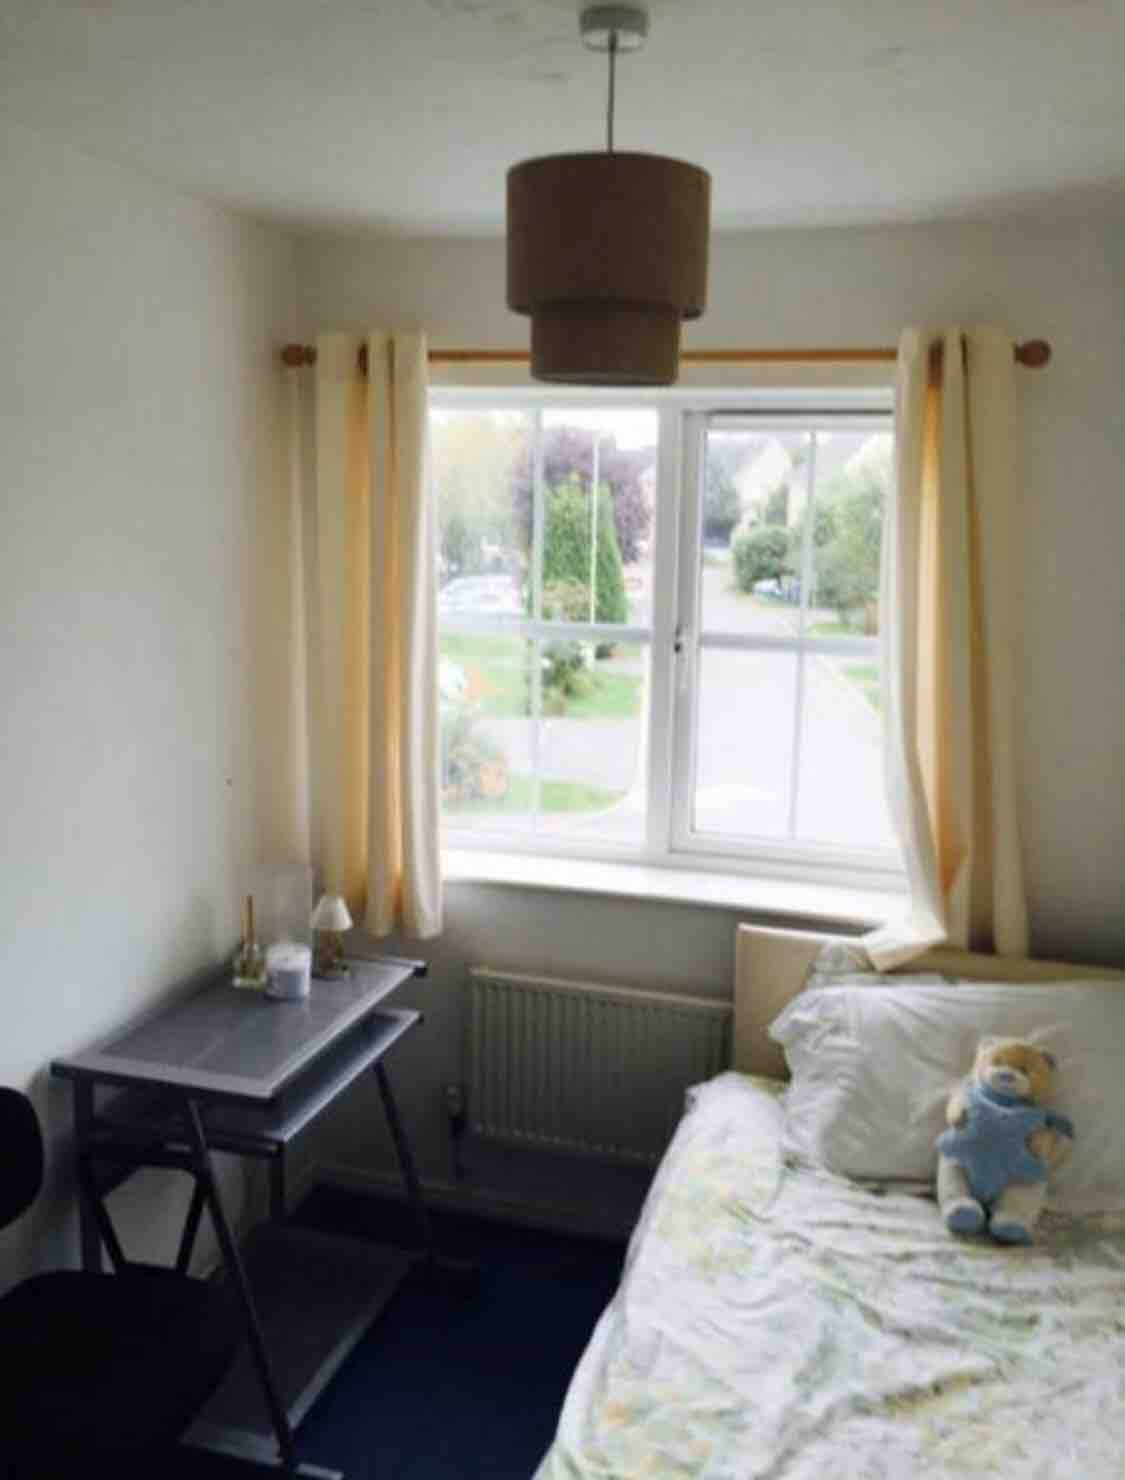 1 room in Toot Baldon, Oxford, OX47ZD RoomsLocal image